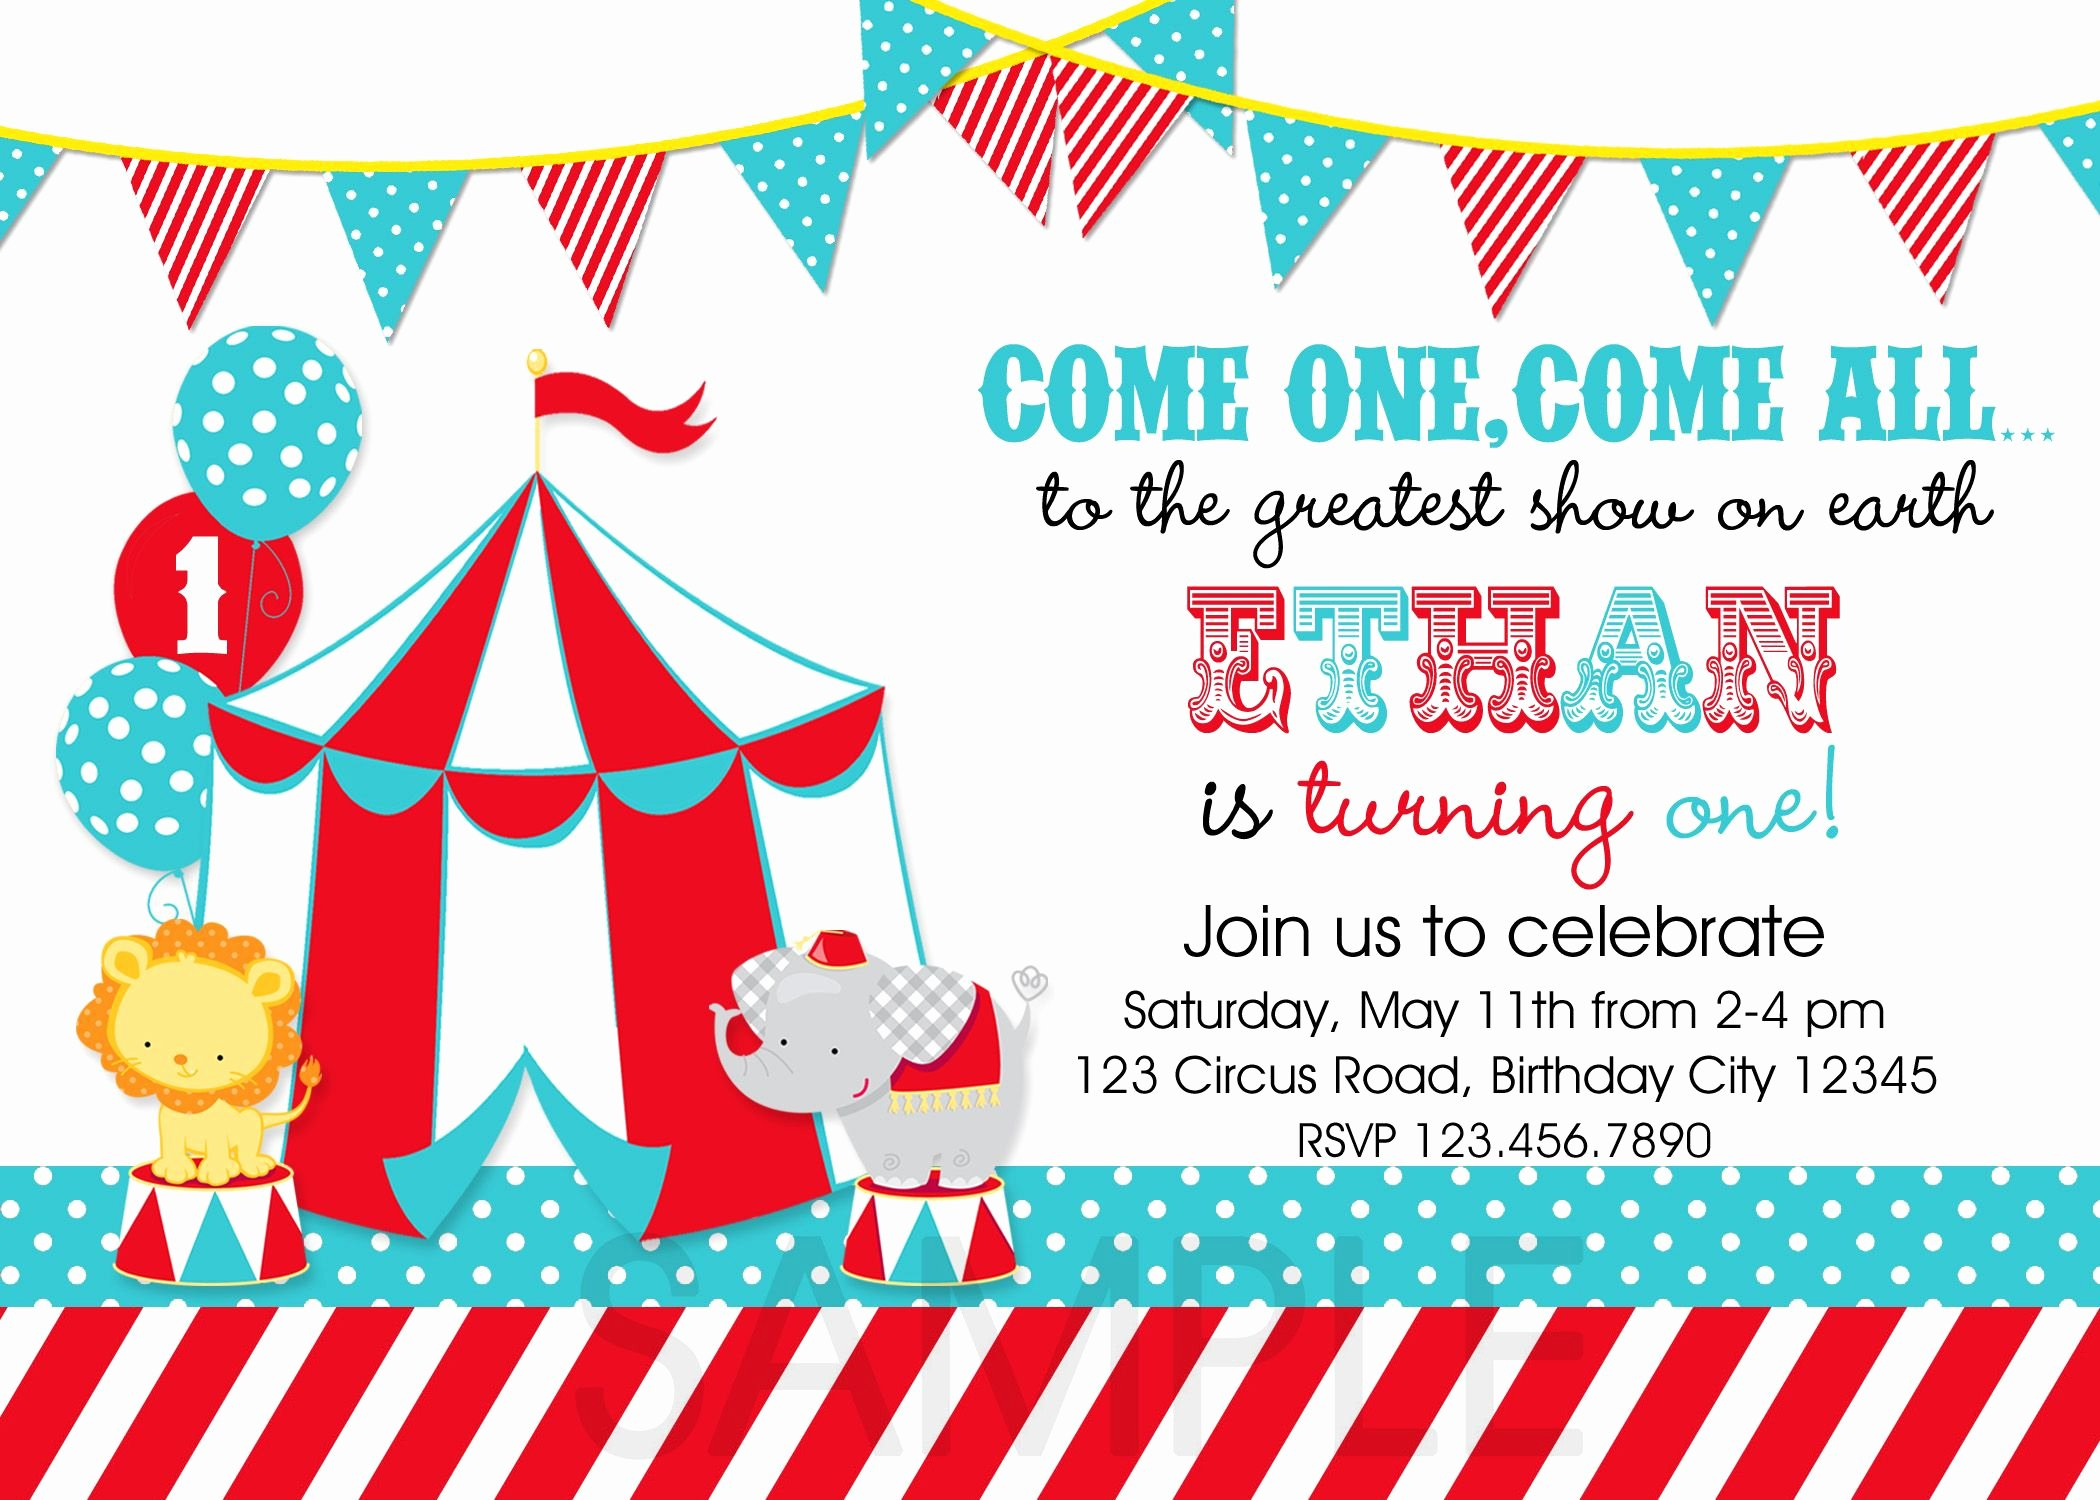 Carnival theme Party Invitations Lovely Circus Party Invitations Template 3zcfy9xw